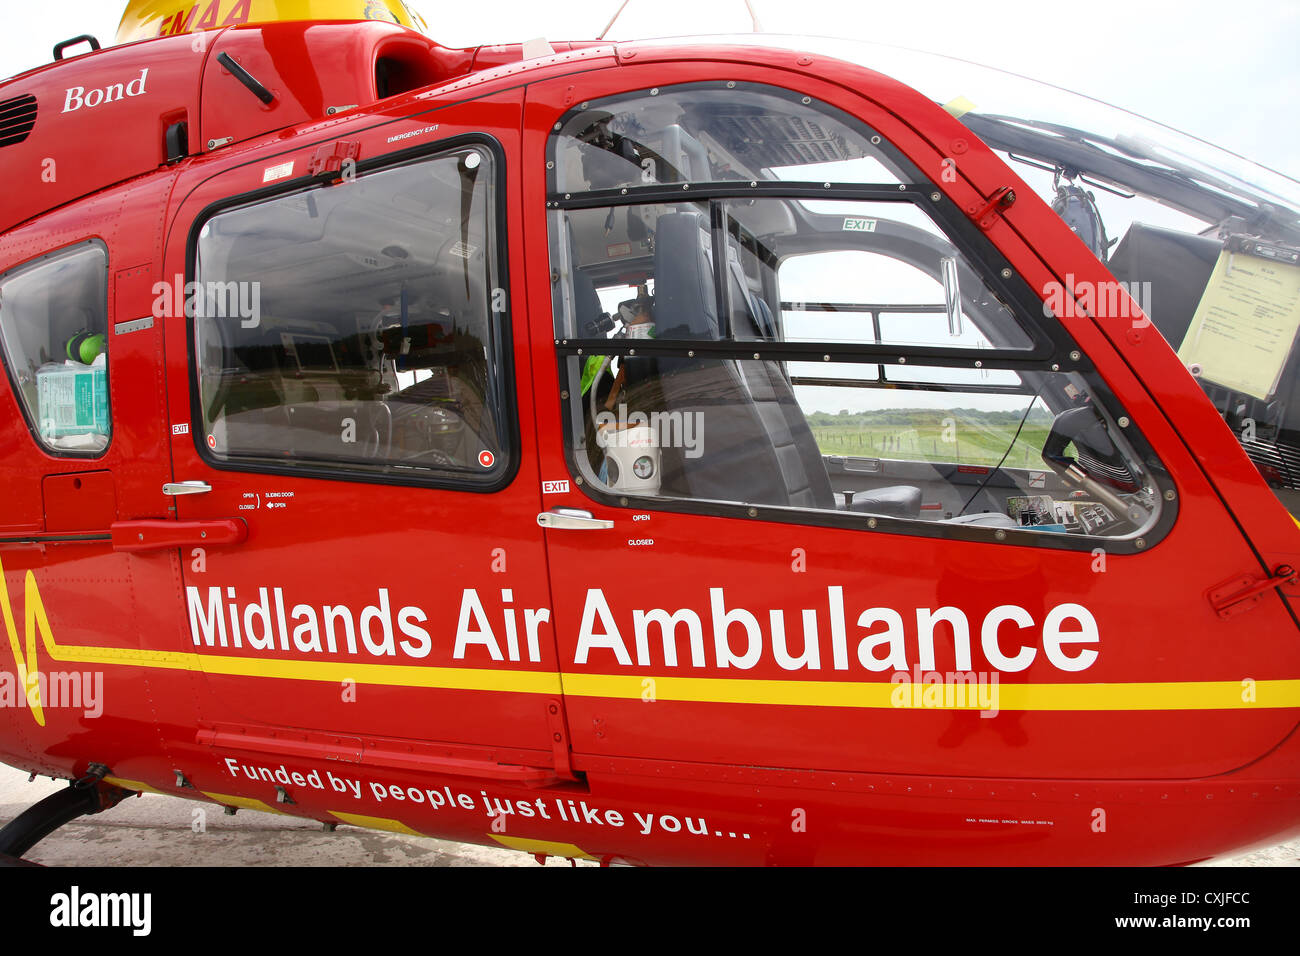 A Eurocopter EC135 helicopter used by the East Midlands Air Ambulance service - Stock Image